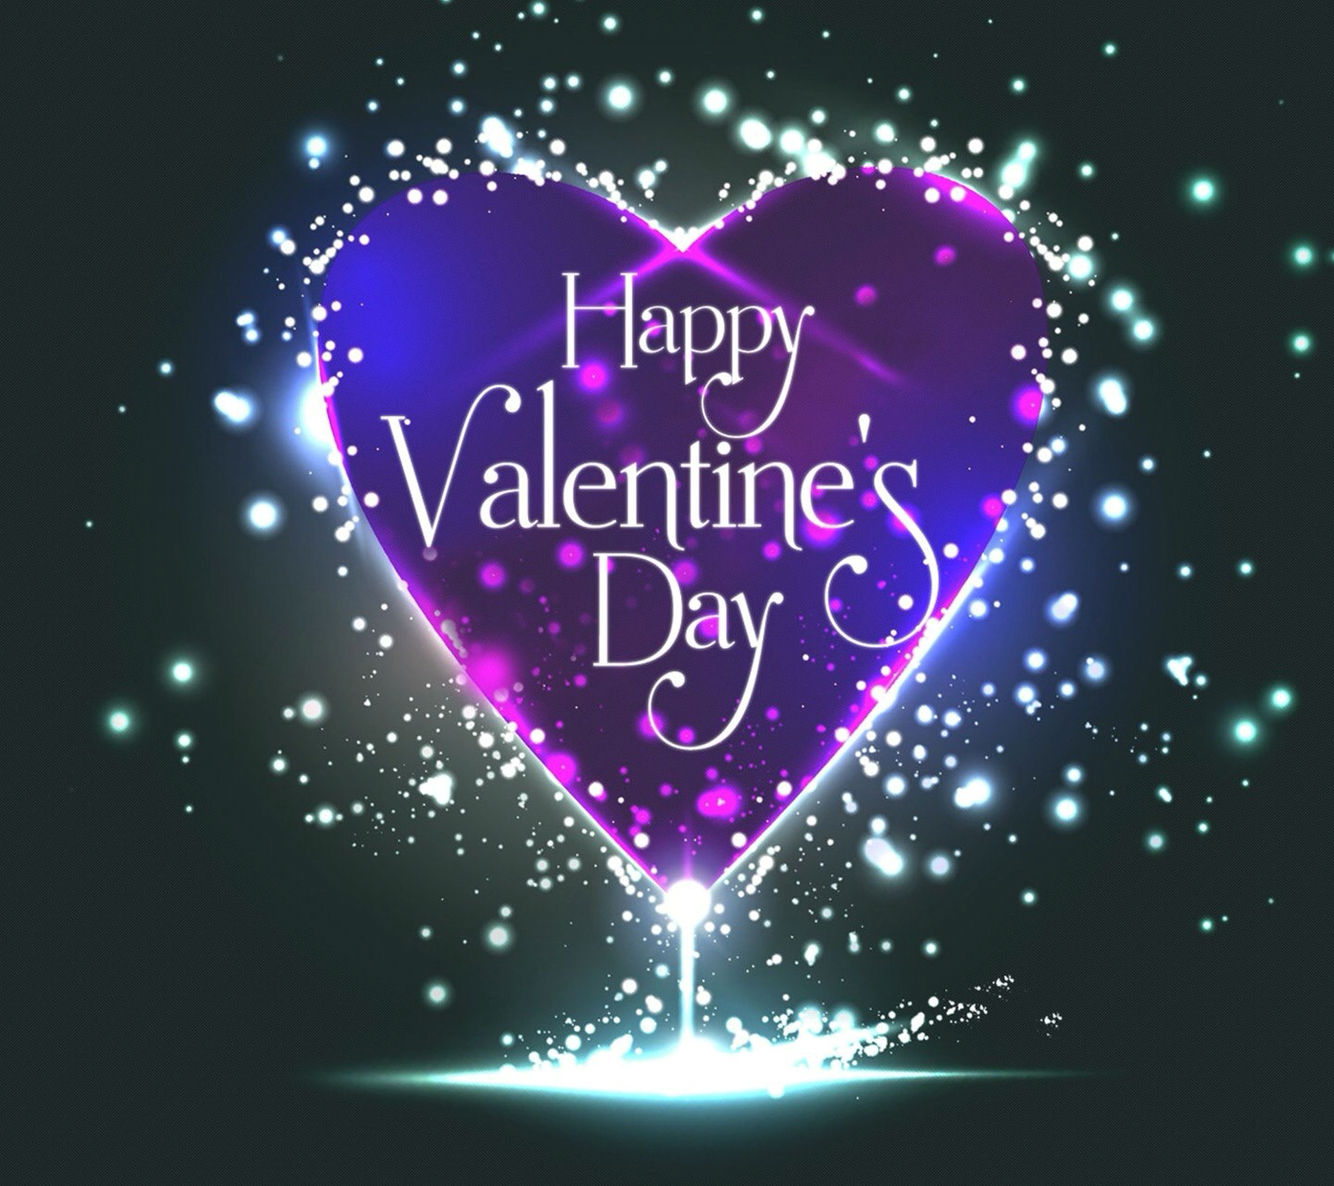 Happy Valentine S Day Pictures Photos And Images For